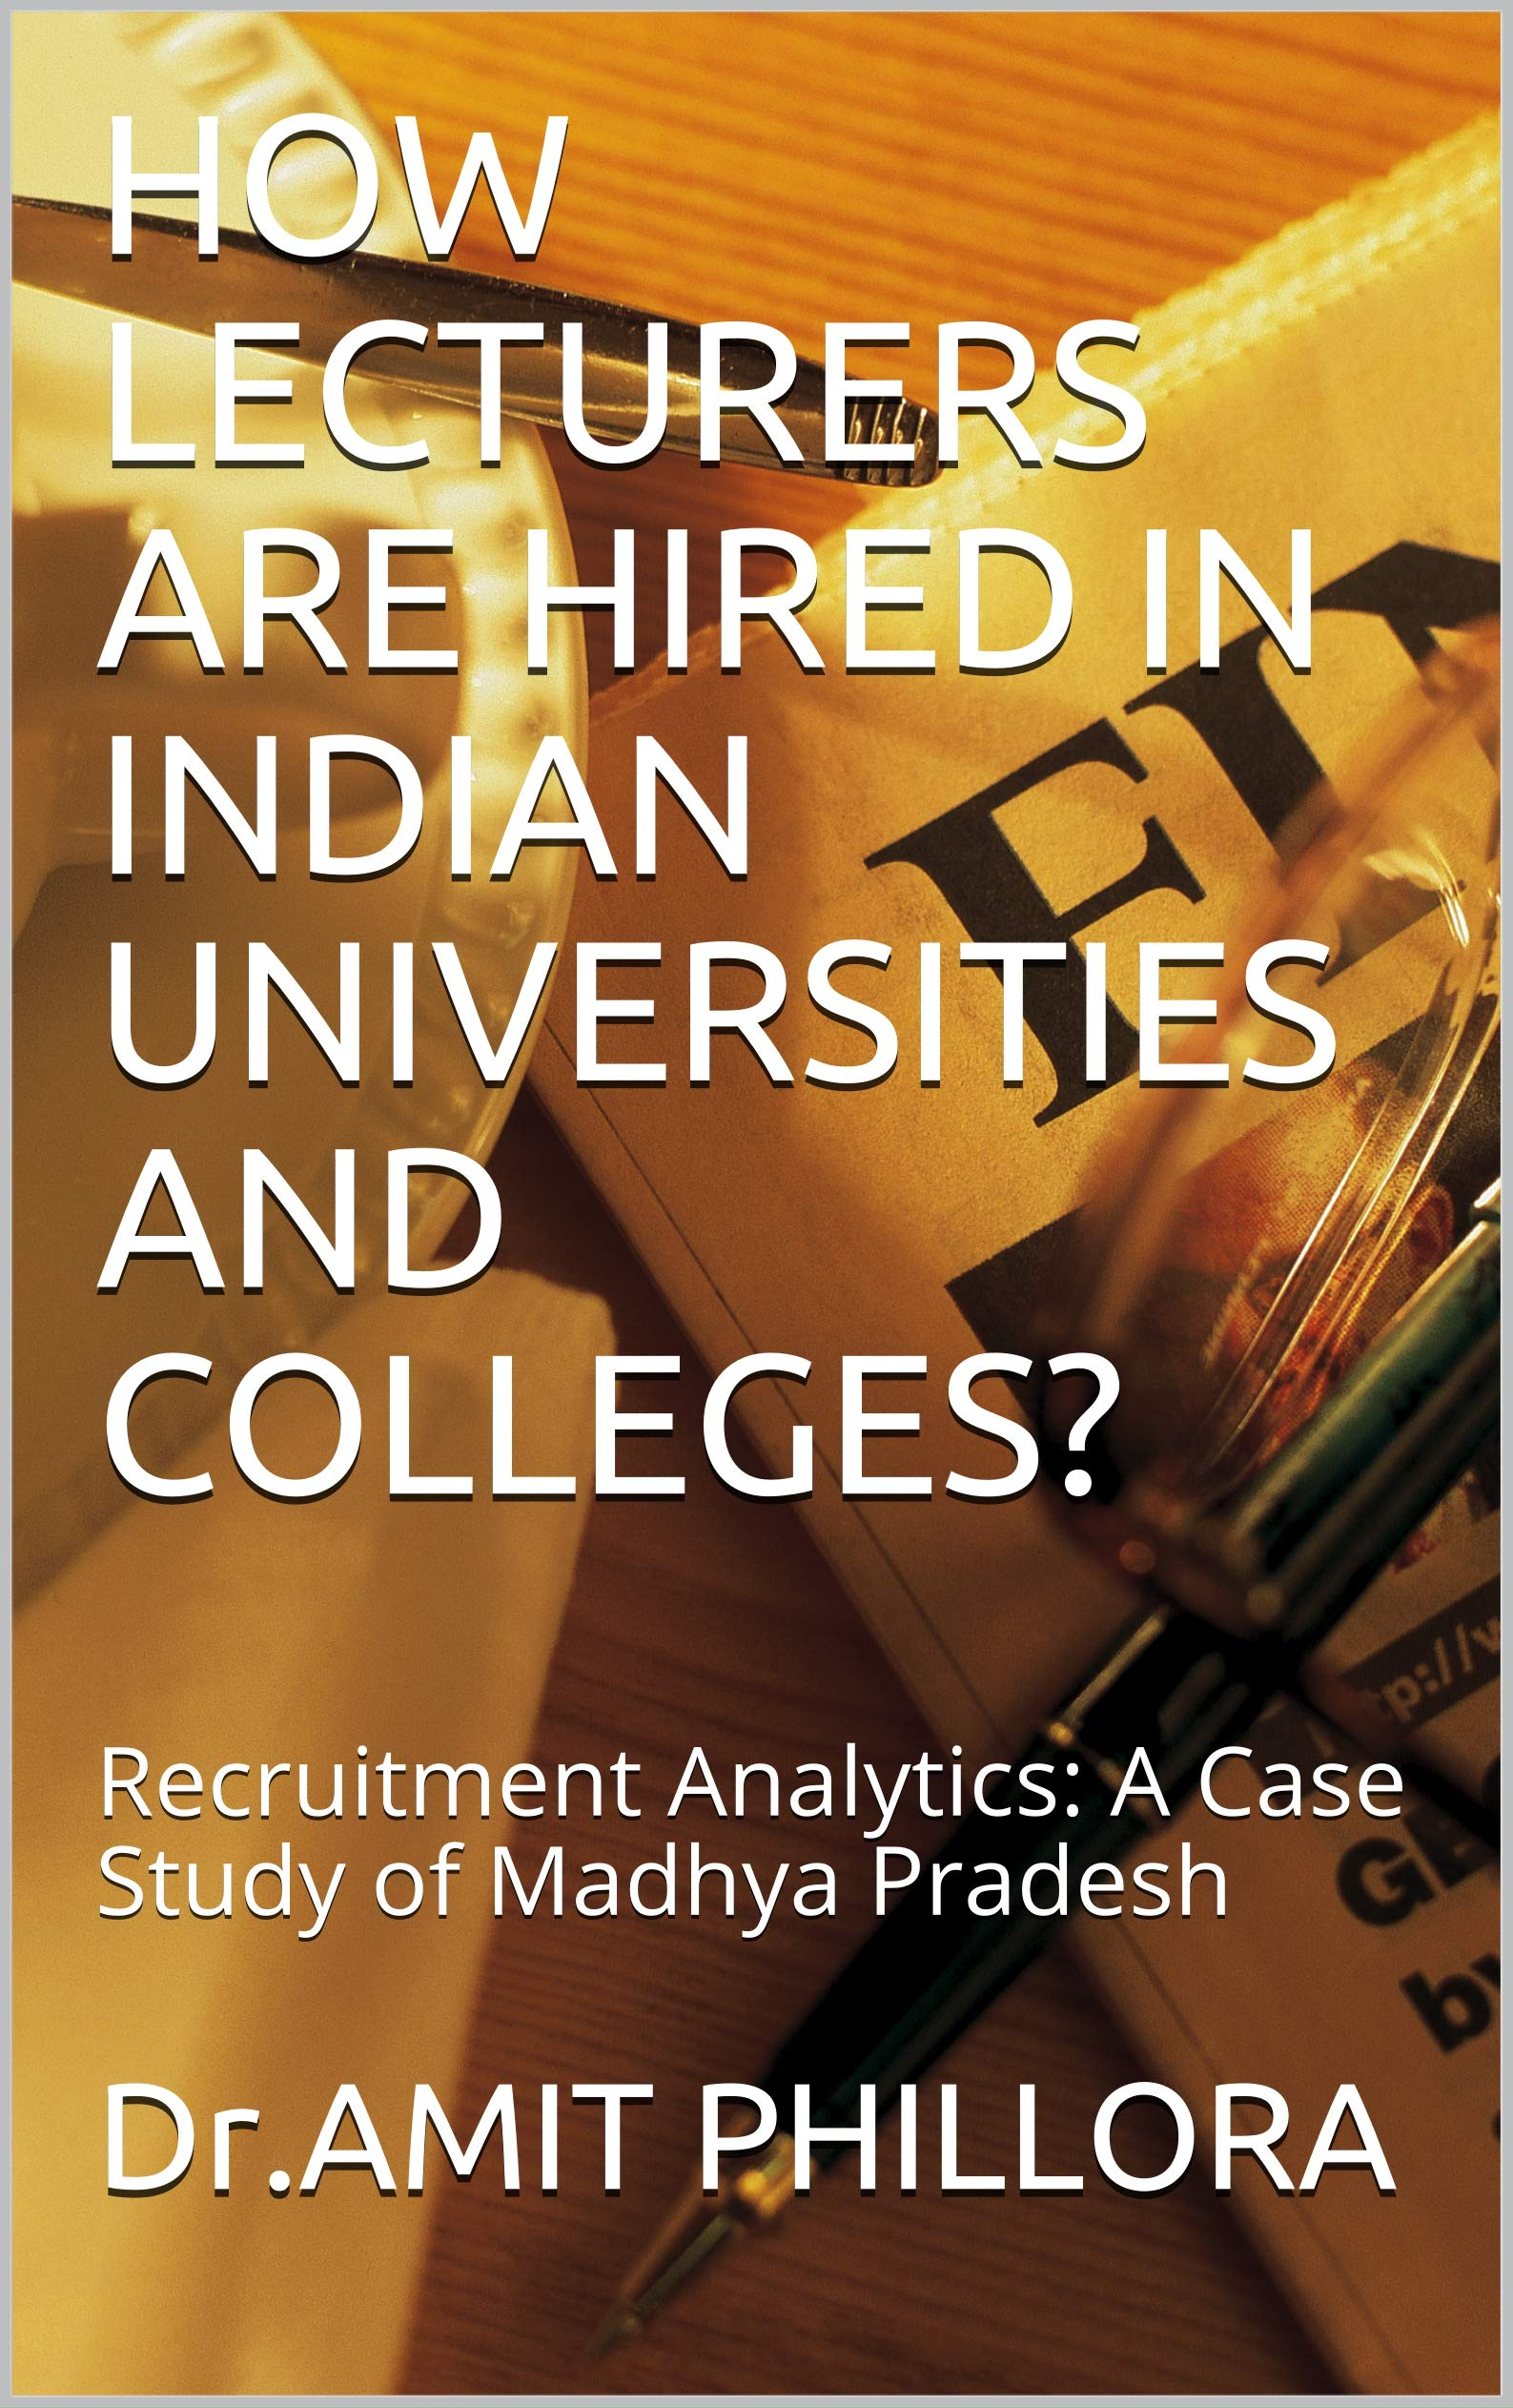 HOW LECTURERS ARE HIRED IN INDIAN UNIVERSITIES AND COLLEGES?: Recruitment Analytics: A Case Study of Madhya Pradesh